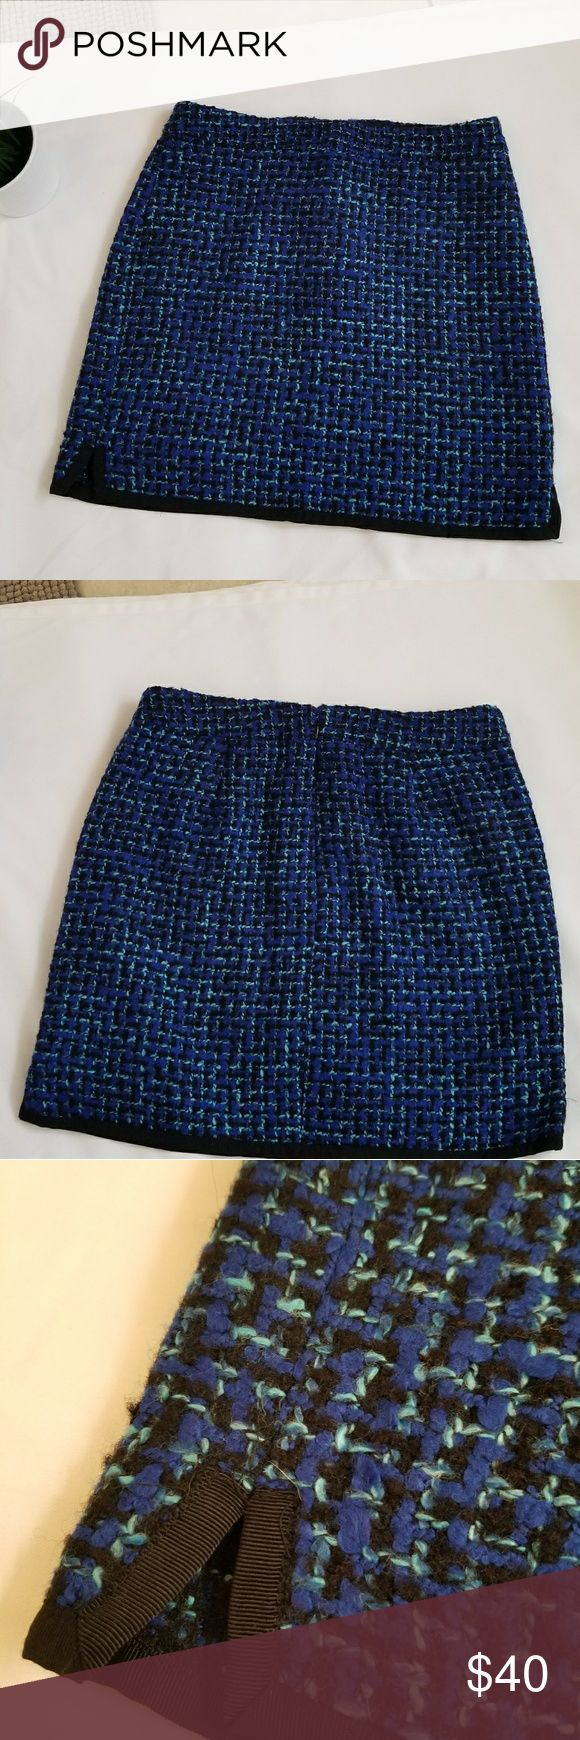 J. CREW Postage Stamp Mini Tweed Skirt Beautiful mini tweed skirt in Indigo. Has a beautiful black trim around bottom which pops. Small zipper in back. Skirt is lined with 100% polyester. Outer material is 61% acrylic, 19%polyester, 10%wool, 9% cotton, 1%nylon. Some piling/fraying, but typical of this material. Otherwise in great condition. Waist measures at about 16 in. From waist to bottom is about 17 in. J. Crew Skirts Mini